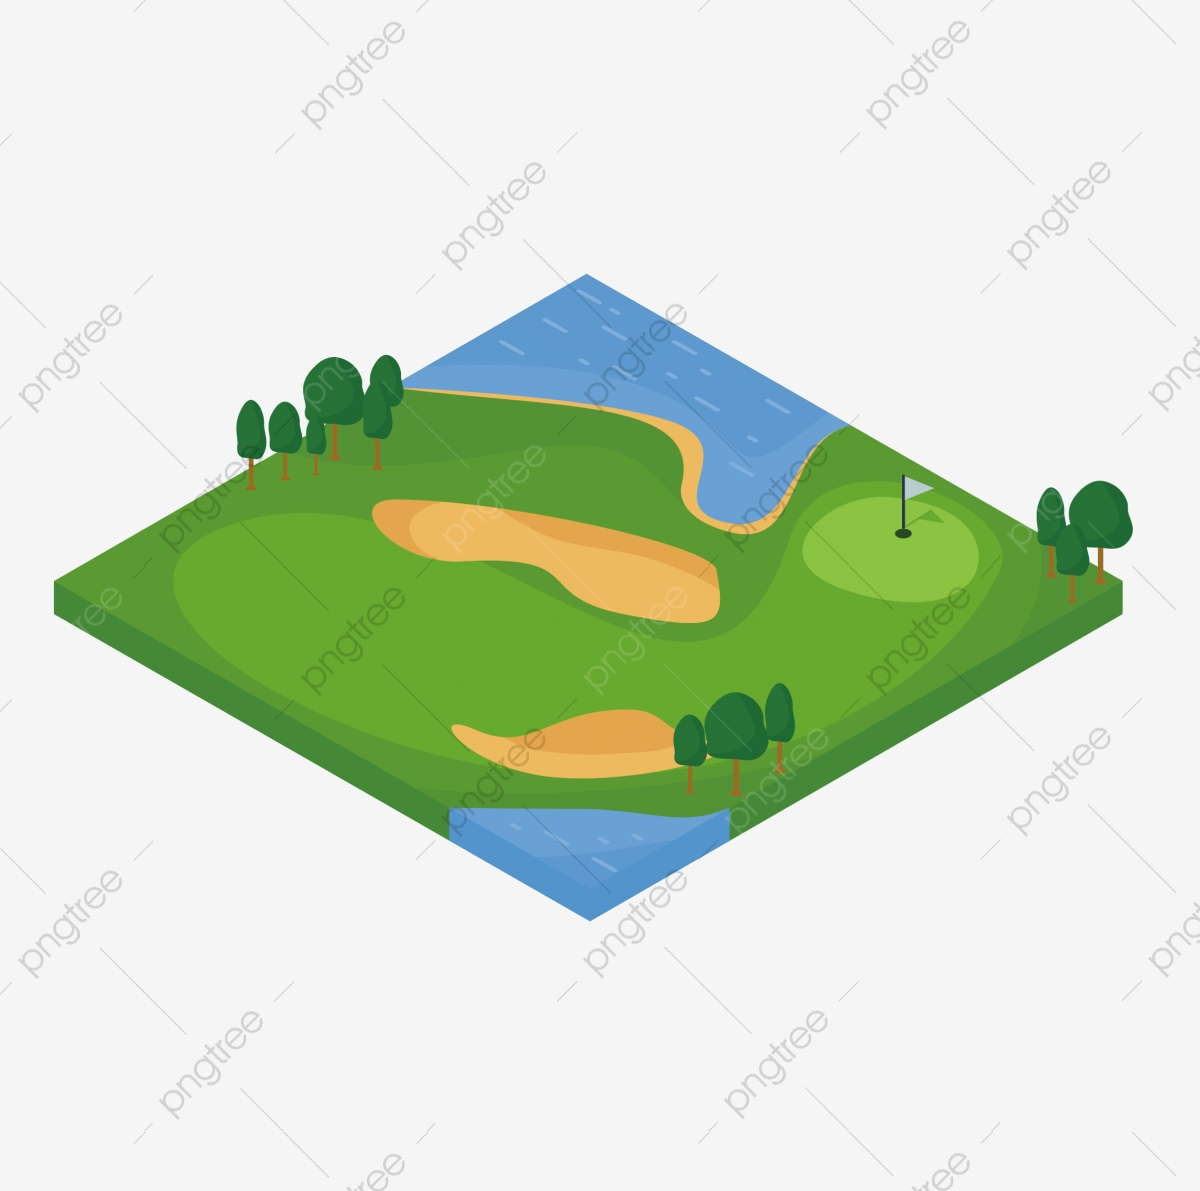 A course lawn png. Golf clipart golf field